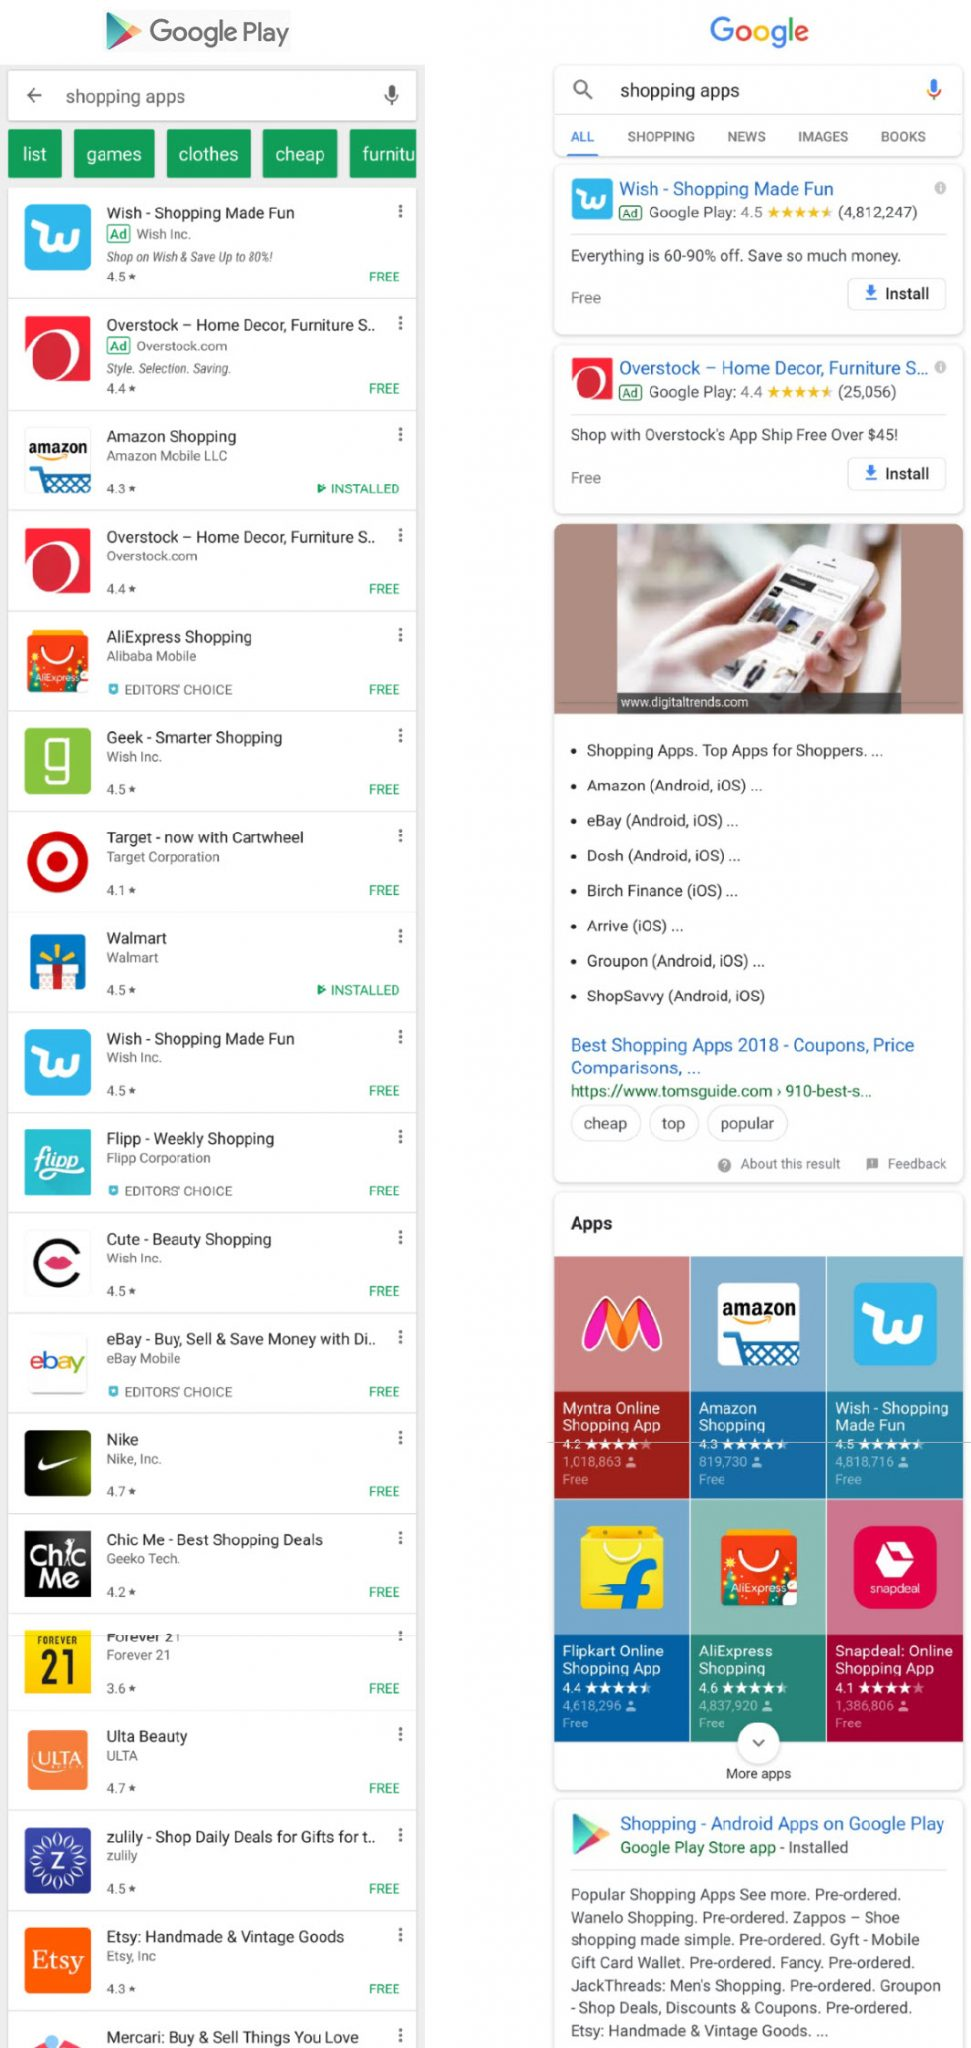 Google Android mobile app search options: the Google Play Store (left) and Google web search.